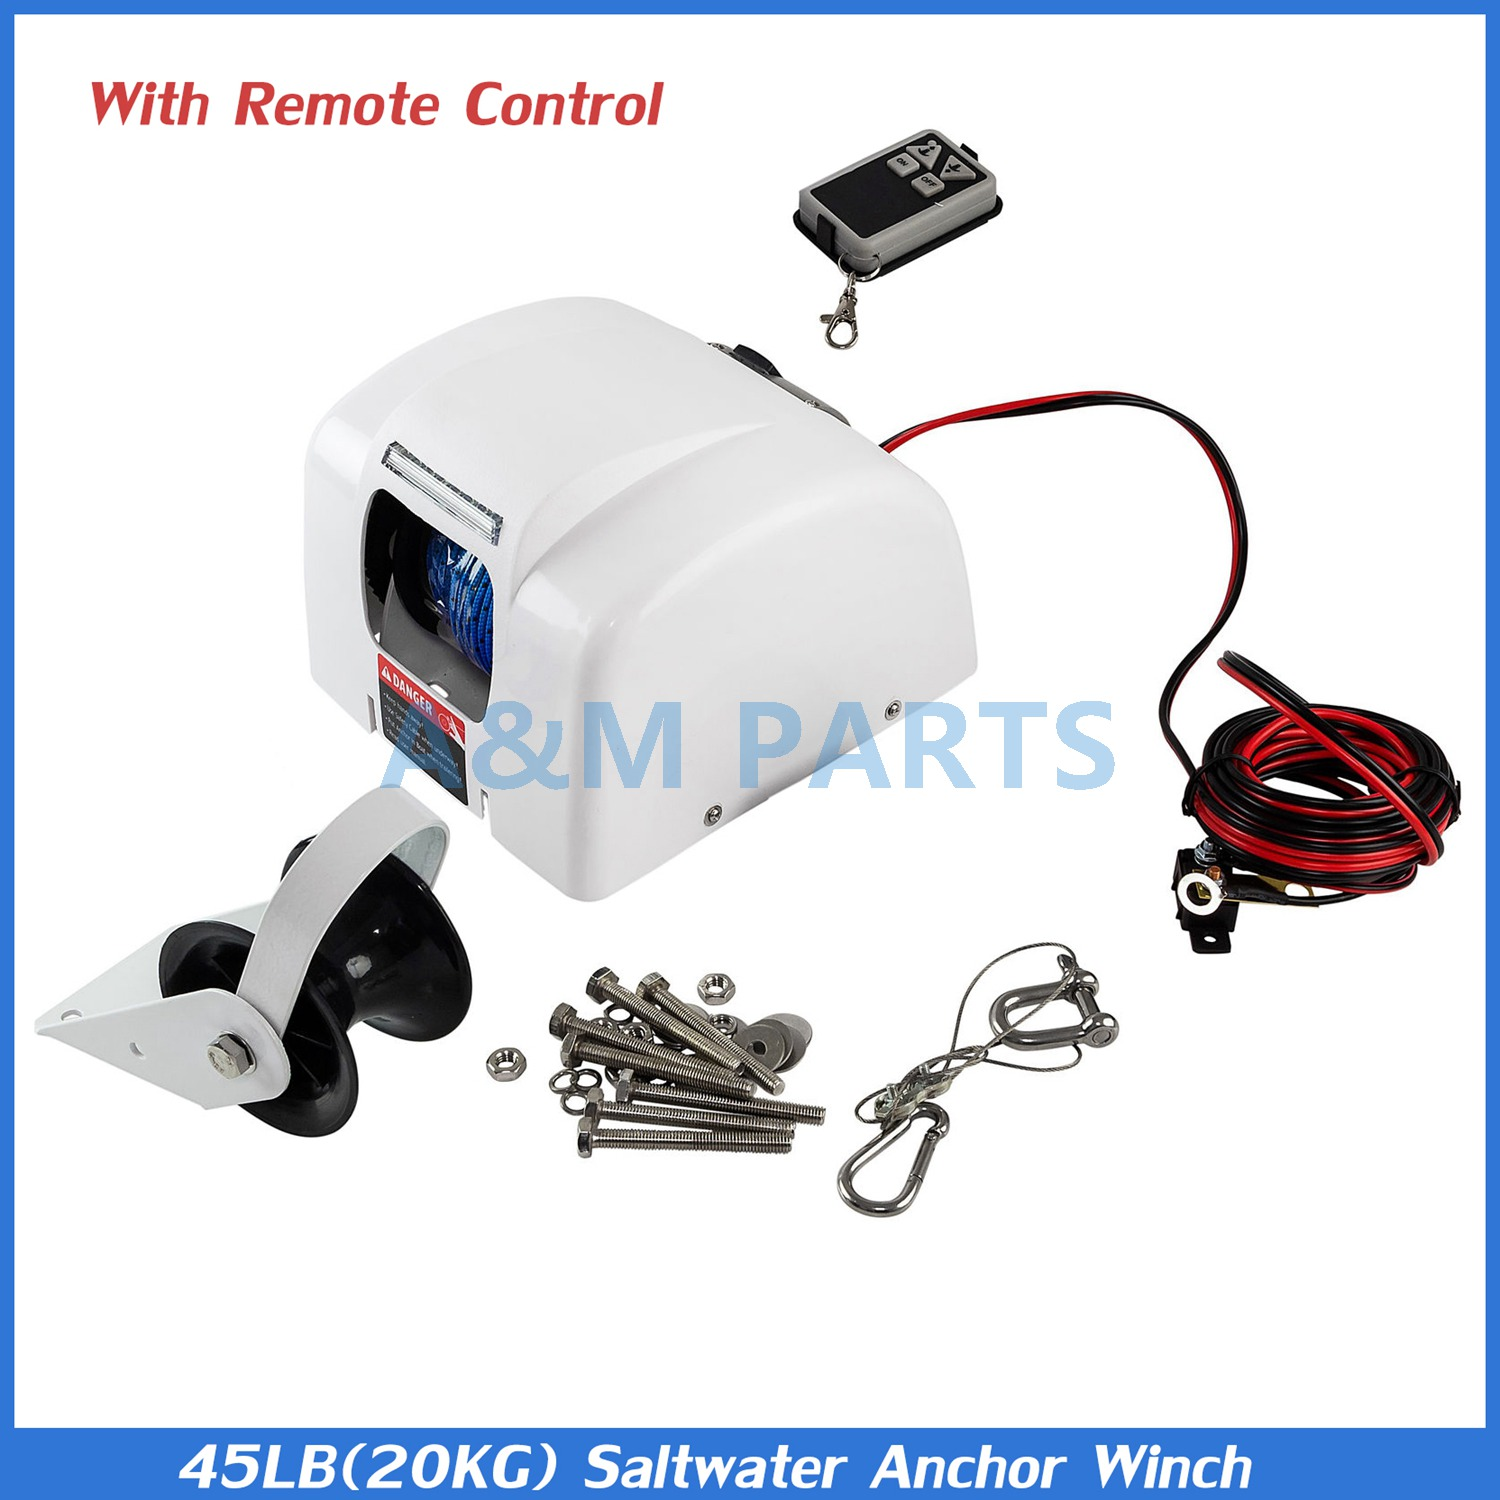 Big Water 45 Electric Anchor Winch Saltwater Boat Winch Wireless Remote Control